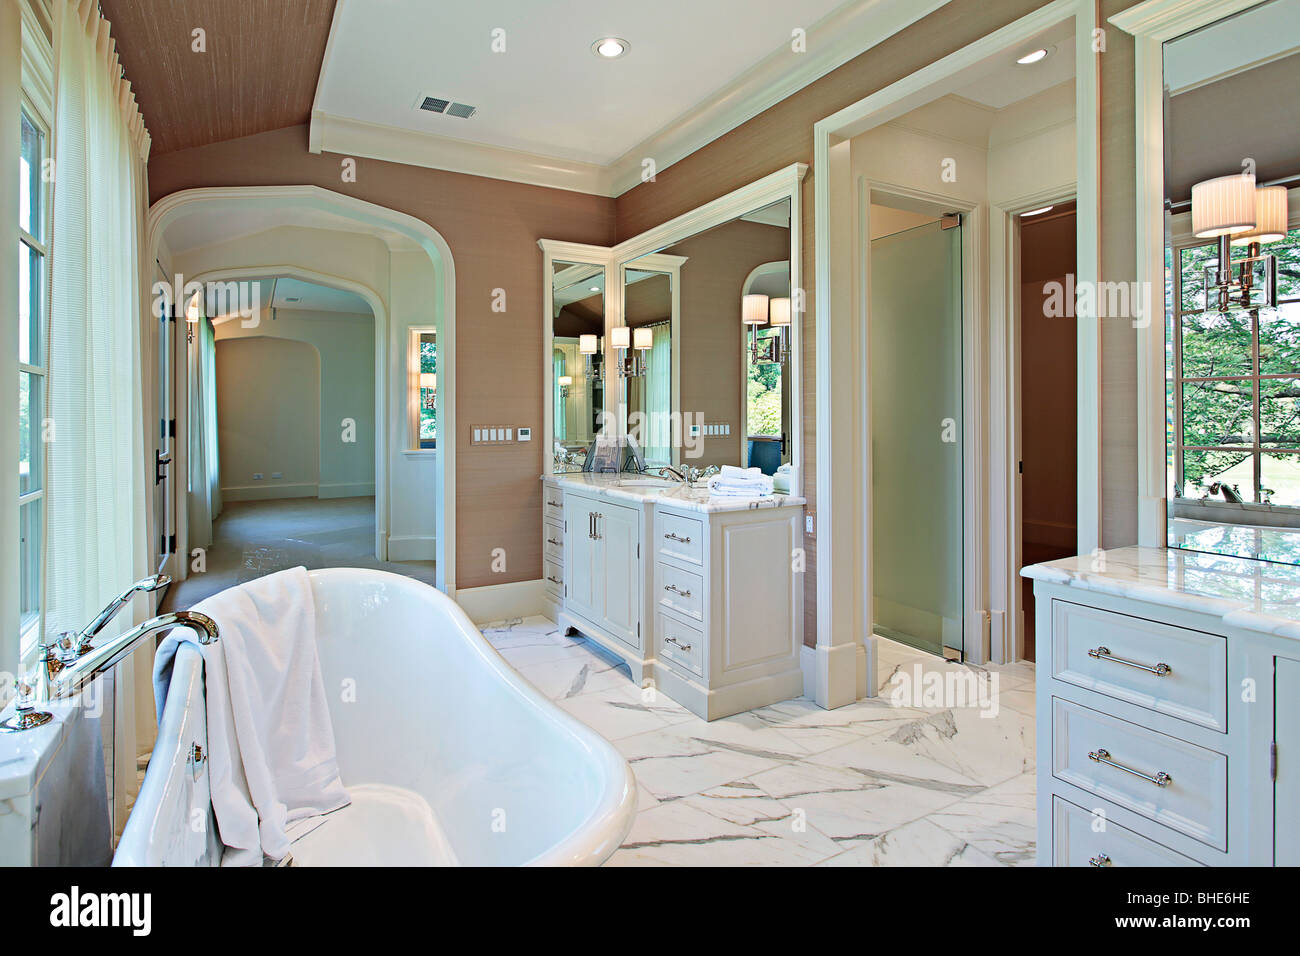 Master bath in new construction home with standalone tub Stock Photo ...